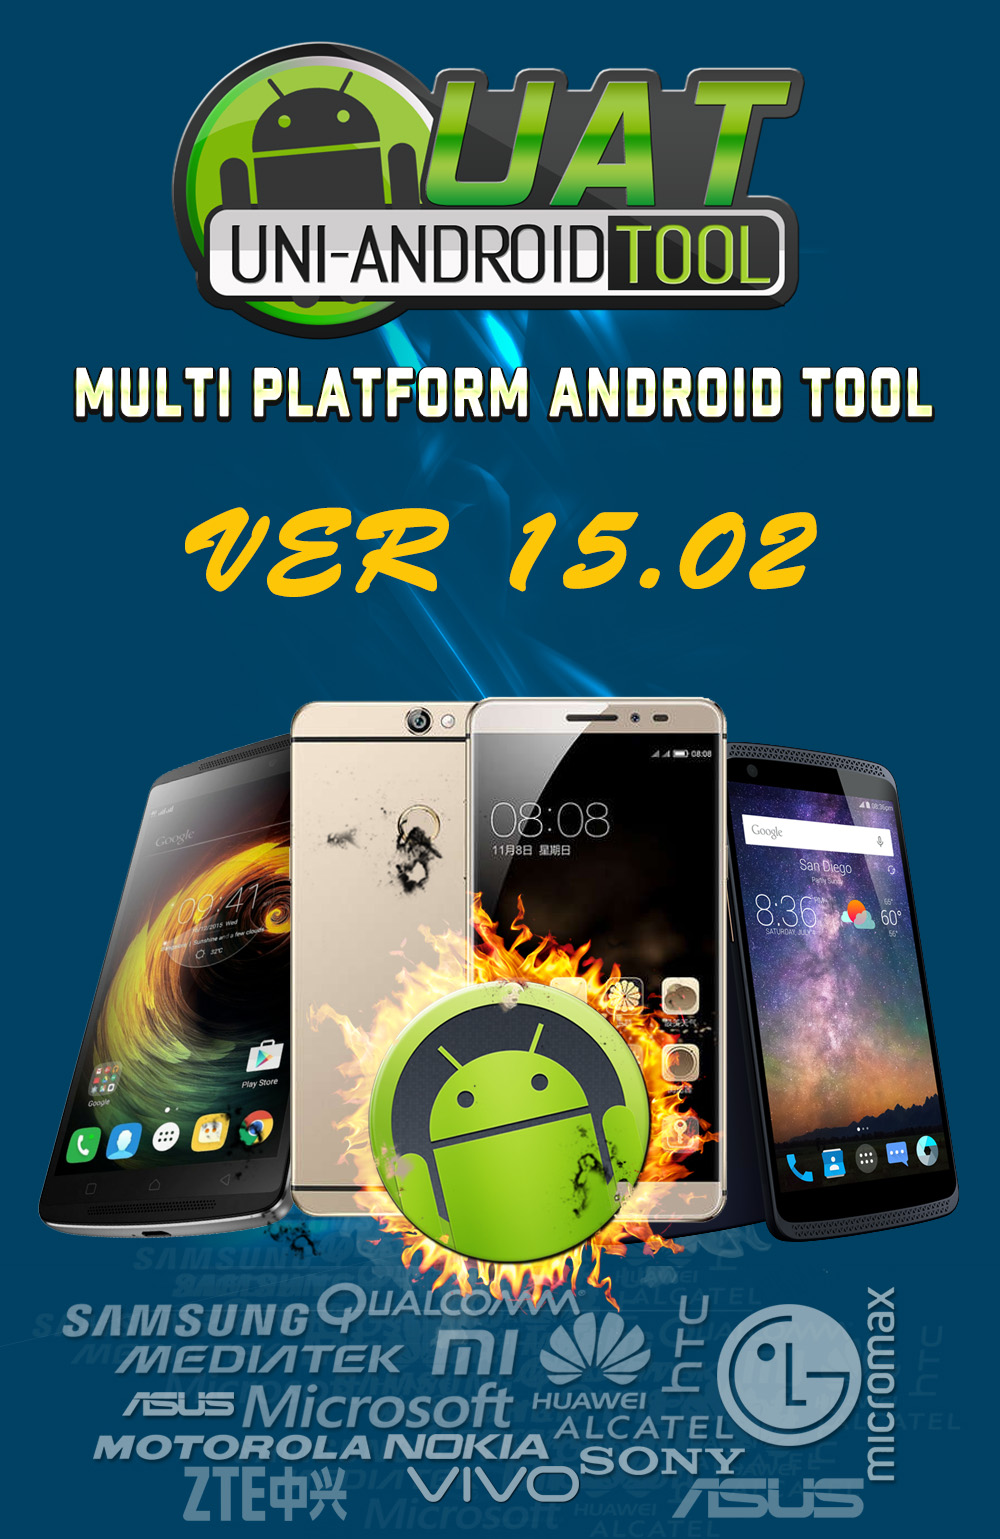 Uni-Android Tool [UAT] Version 15.02 Released [22/3/2018]